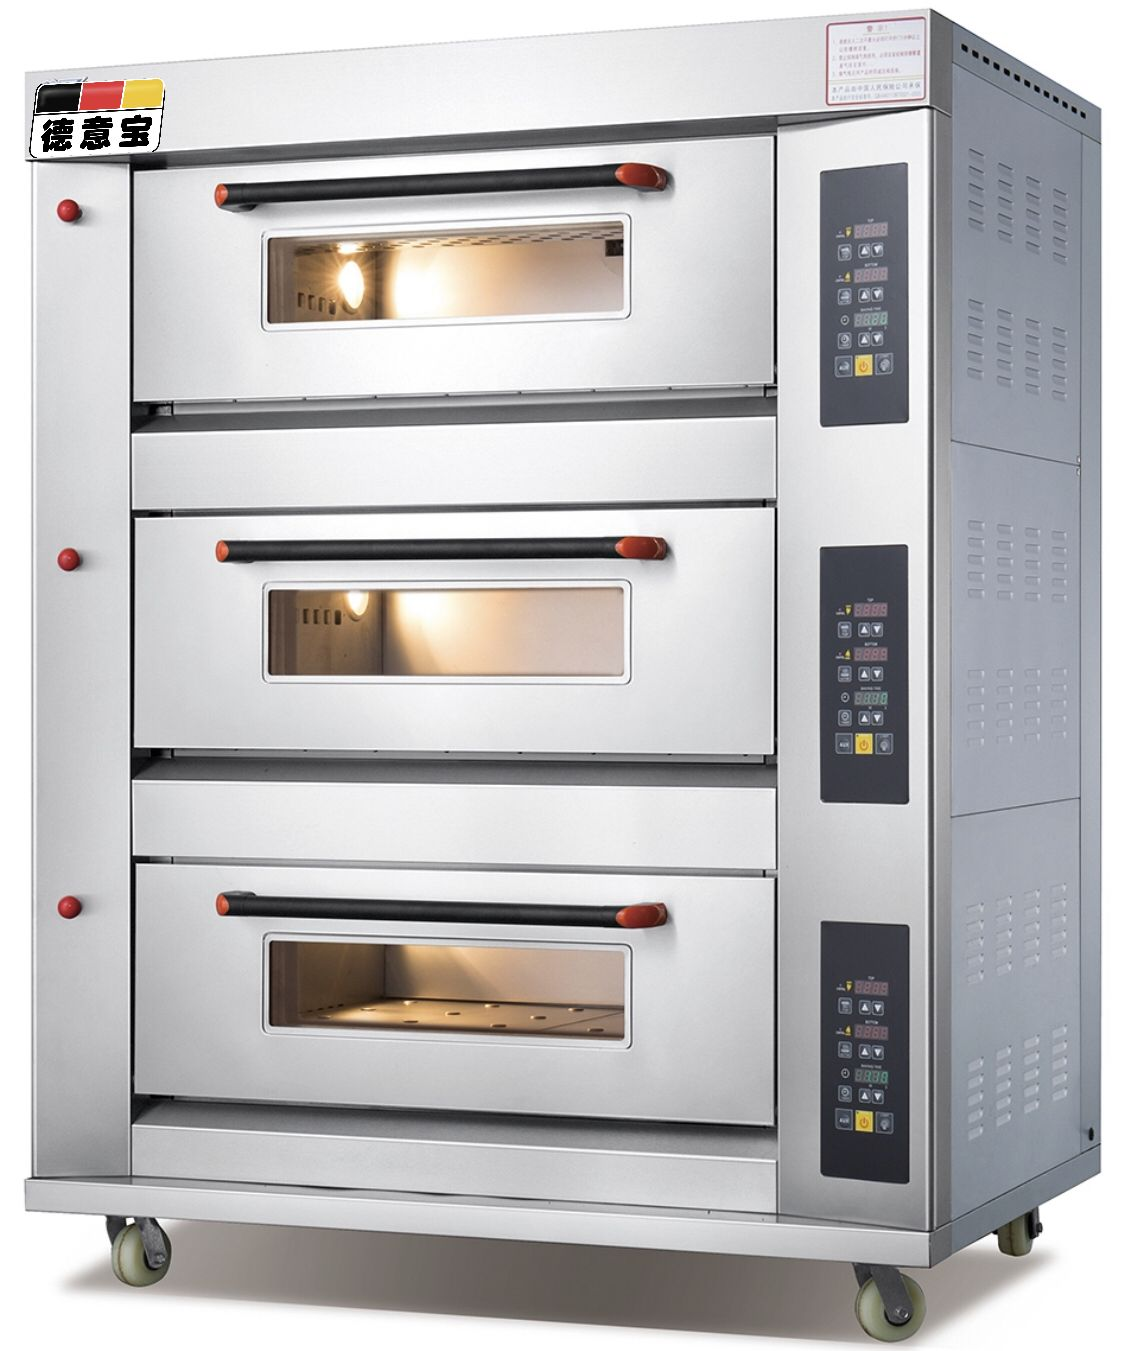 Gas Deck Oven Gas Oven Oven Electric Oven